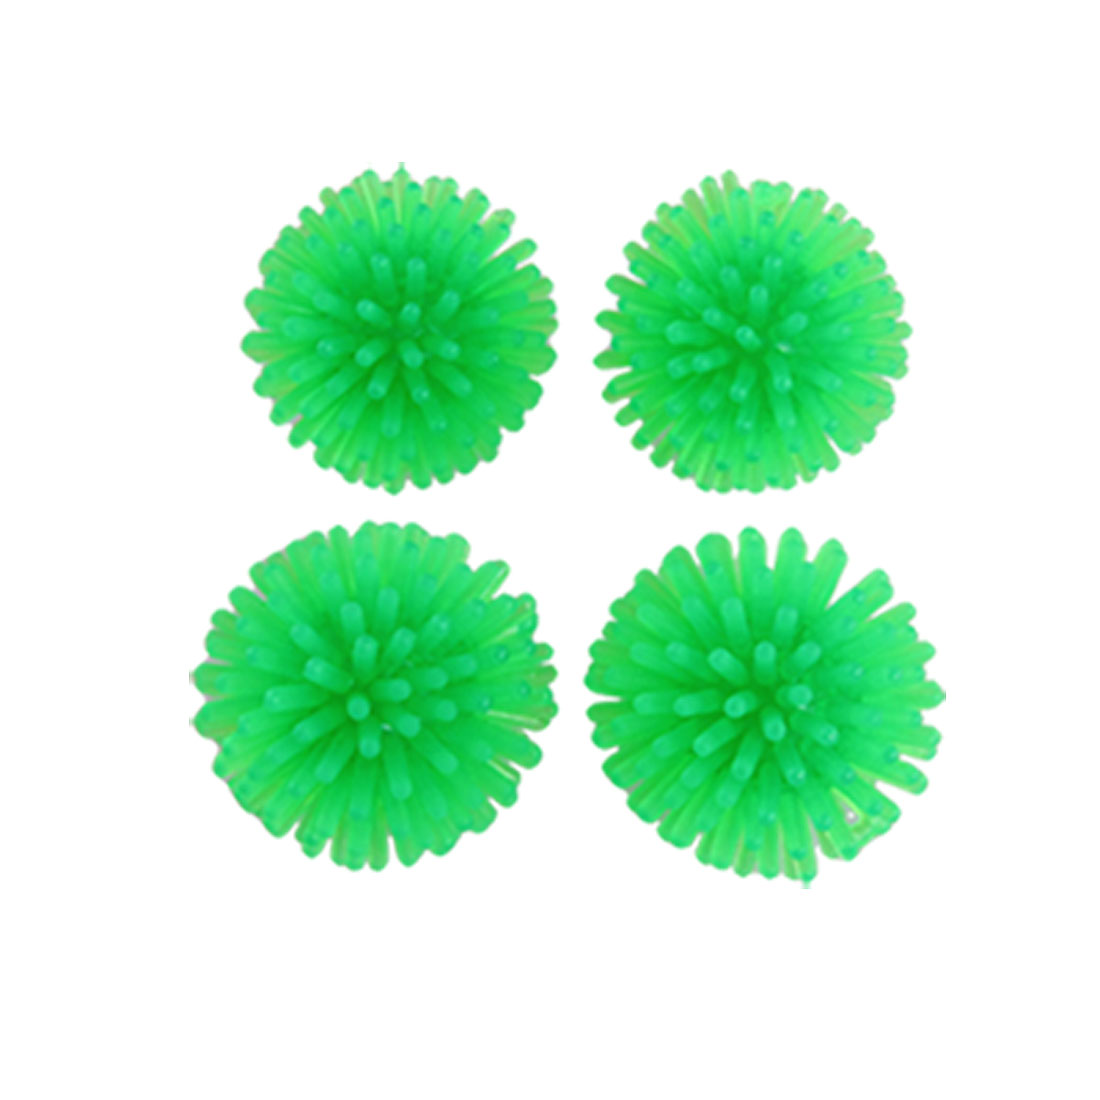 4 Pcs Mini Green Soft Plastic Fish Tank Echinus Decoration